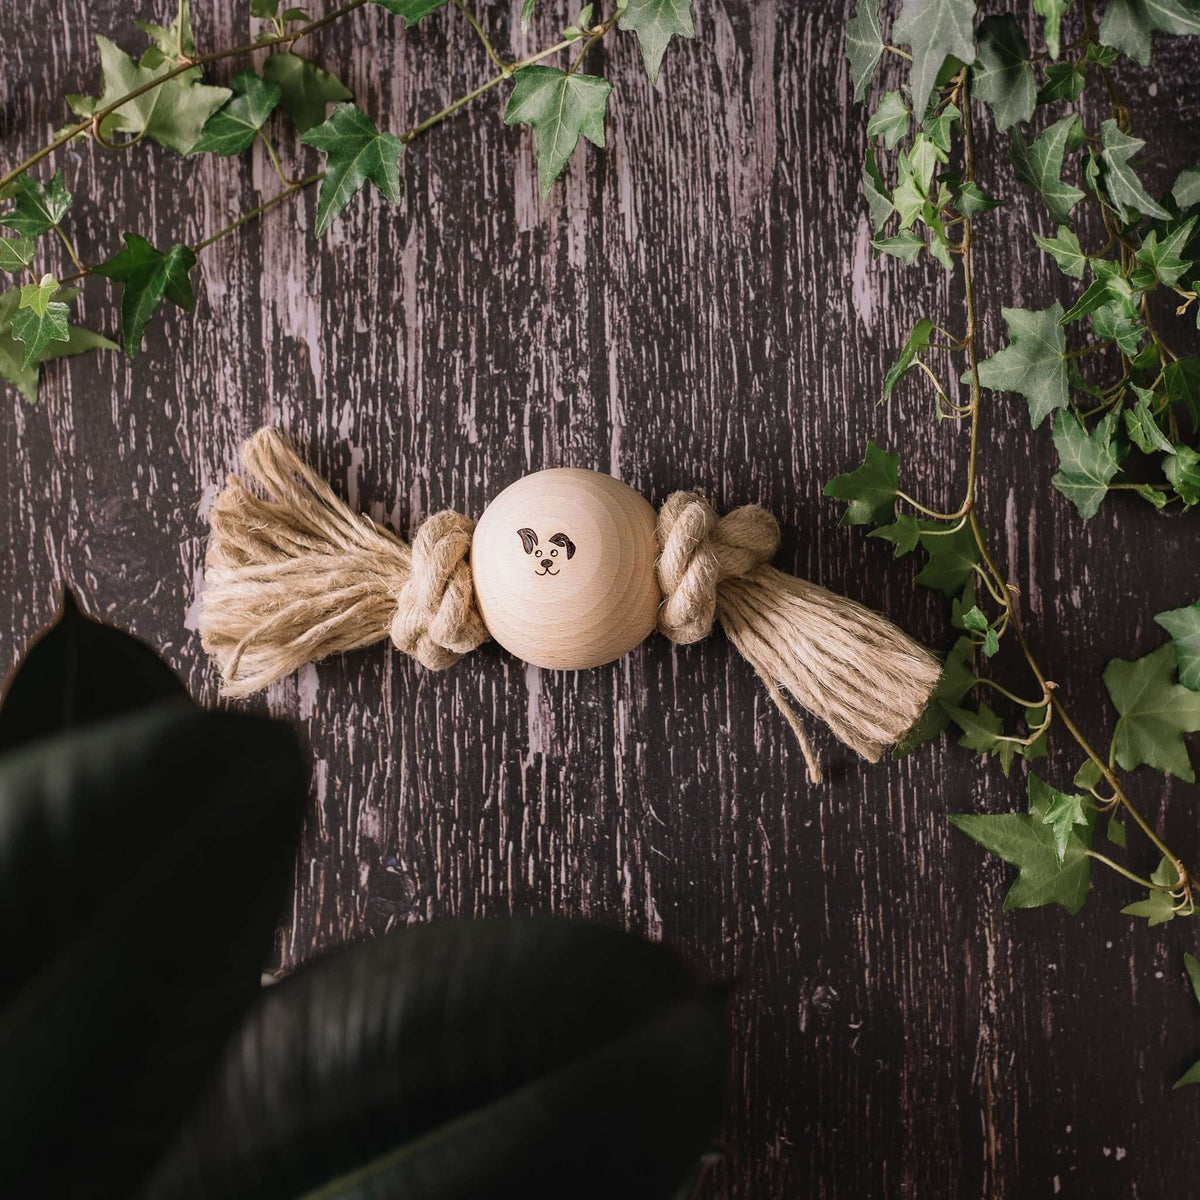 One Ball - Smug Mutts Natural Hemp Rope and Beech Wood Dog Toy, Two Knots Hold the Ball in Place, Natural and Eco Friendly Dog Toy